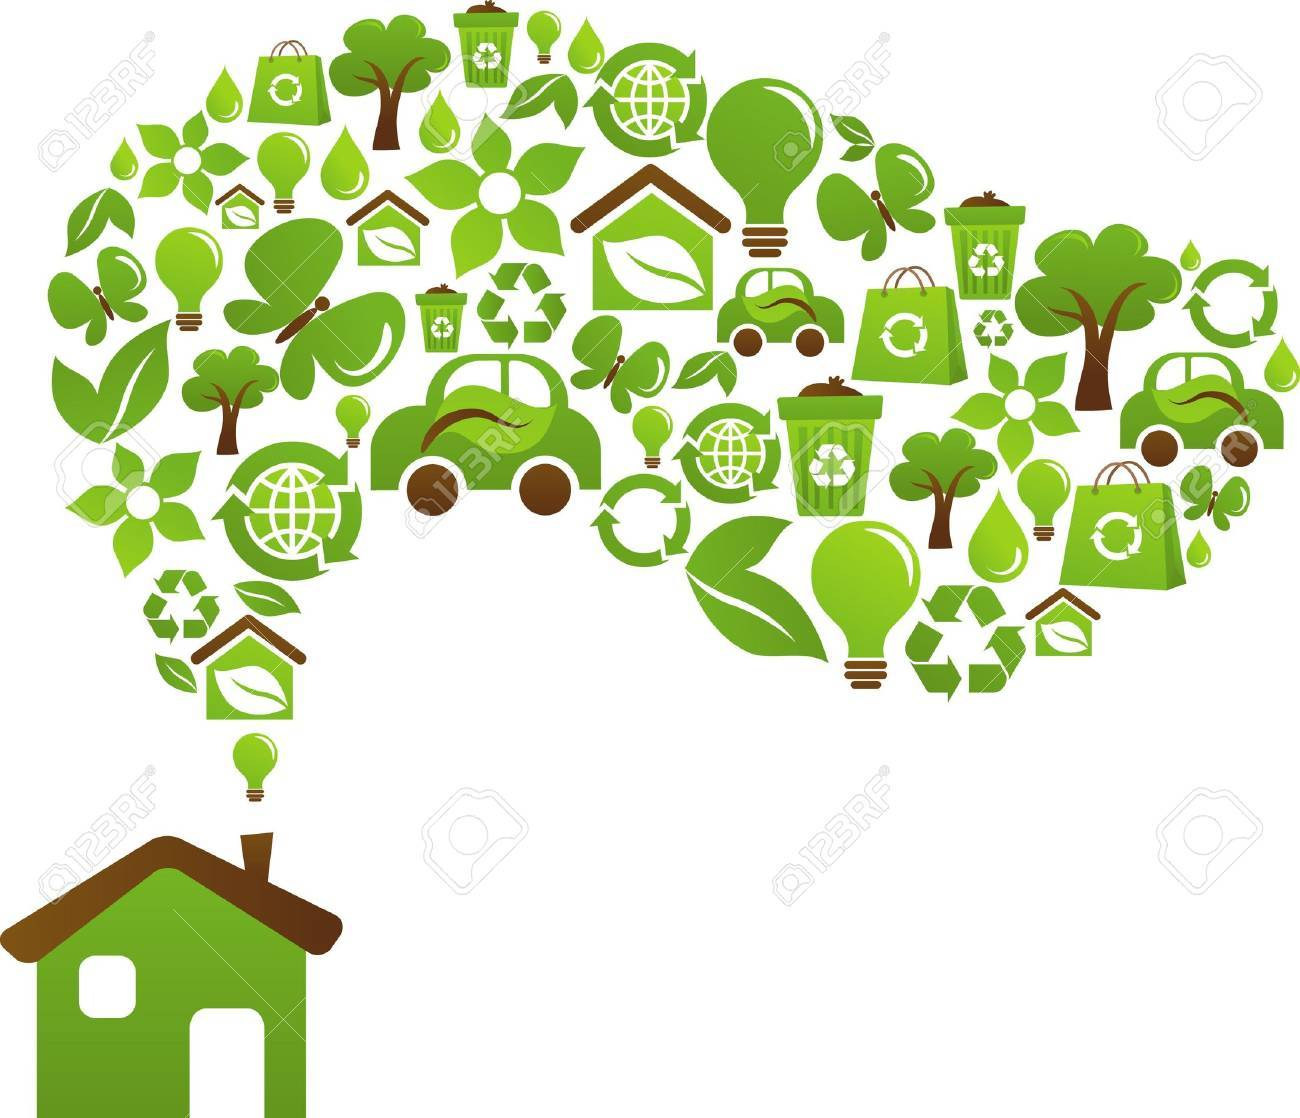 Green house with icons of birds, butterflies and flowers Stock Photo - 6451889